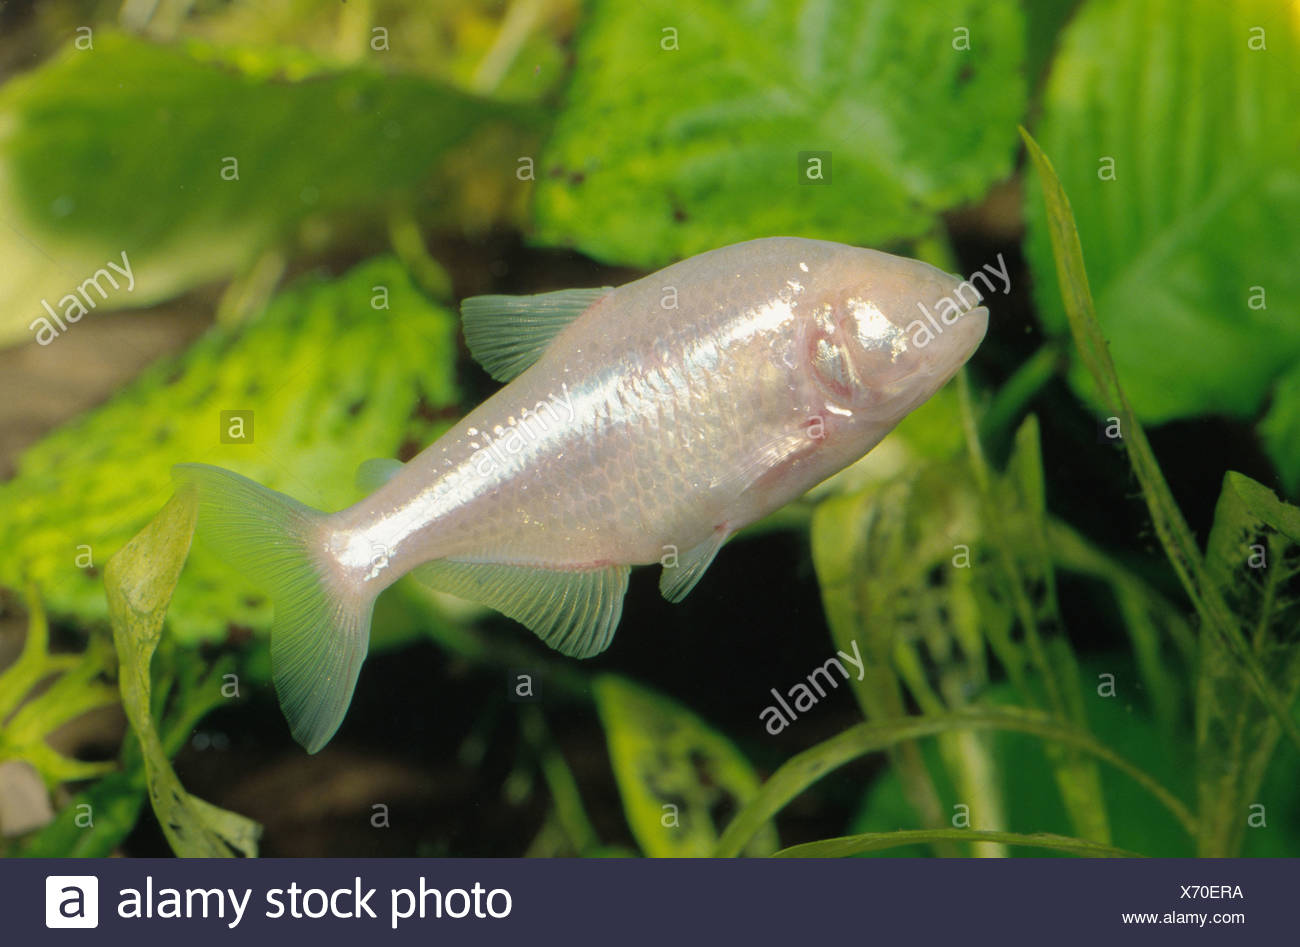 blind cave tetra, blind cavefish (Anoptichthys jordani, Astyanax fasciatus mexicanus), swimming in front of water plants - Stock Image